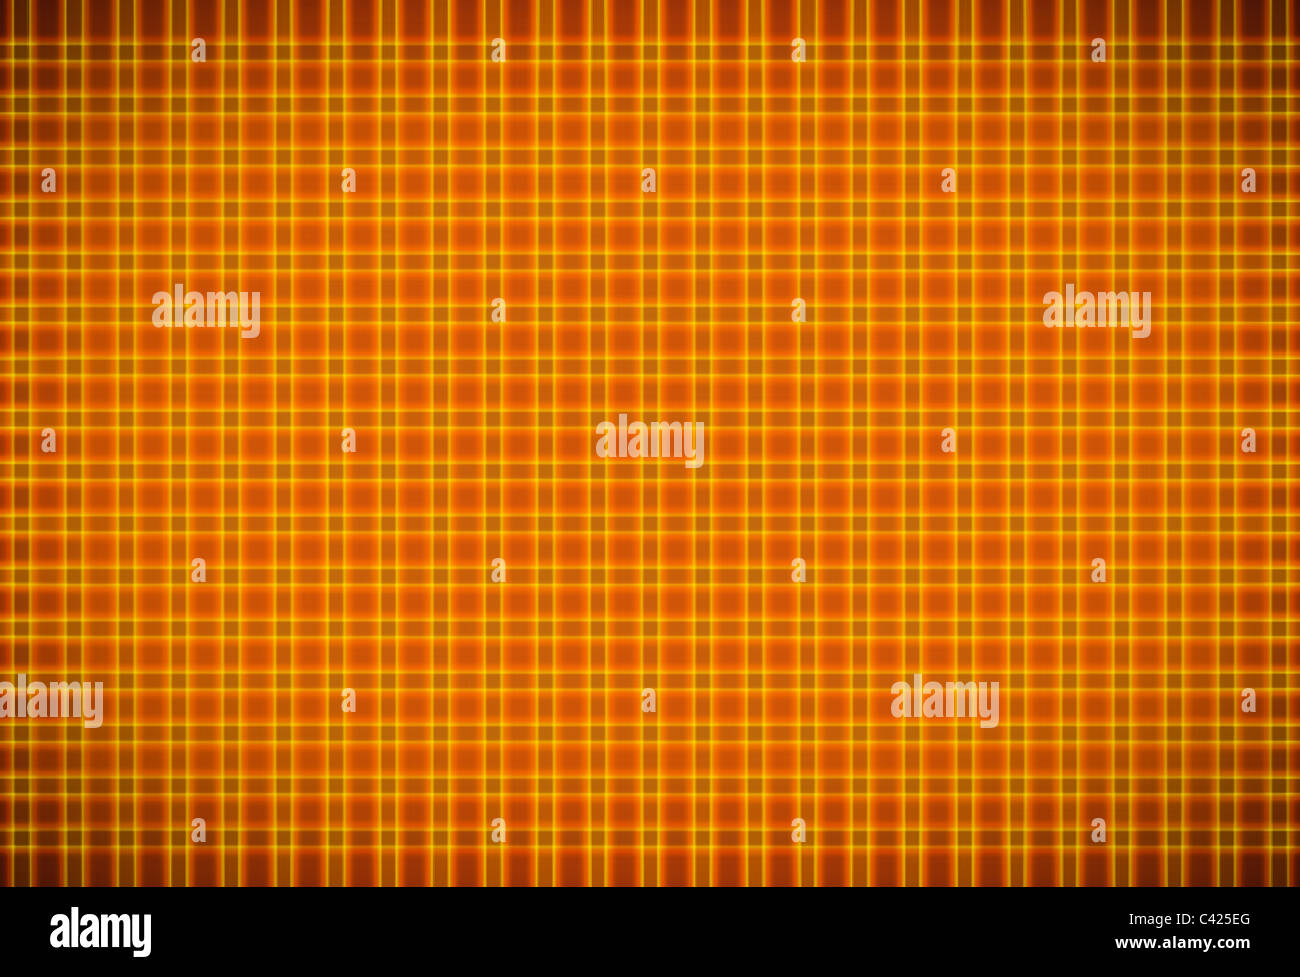 Colorful Abstract Soft Focus High Resolution Background